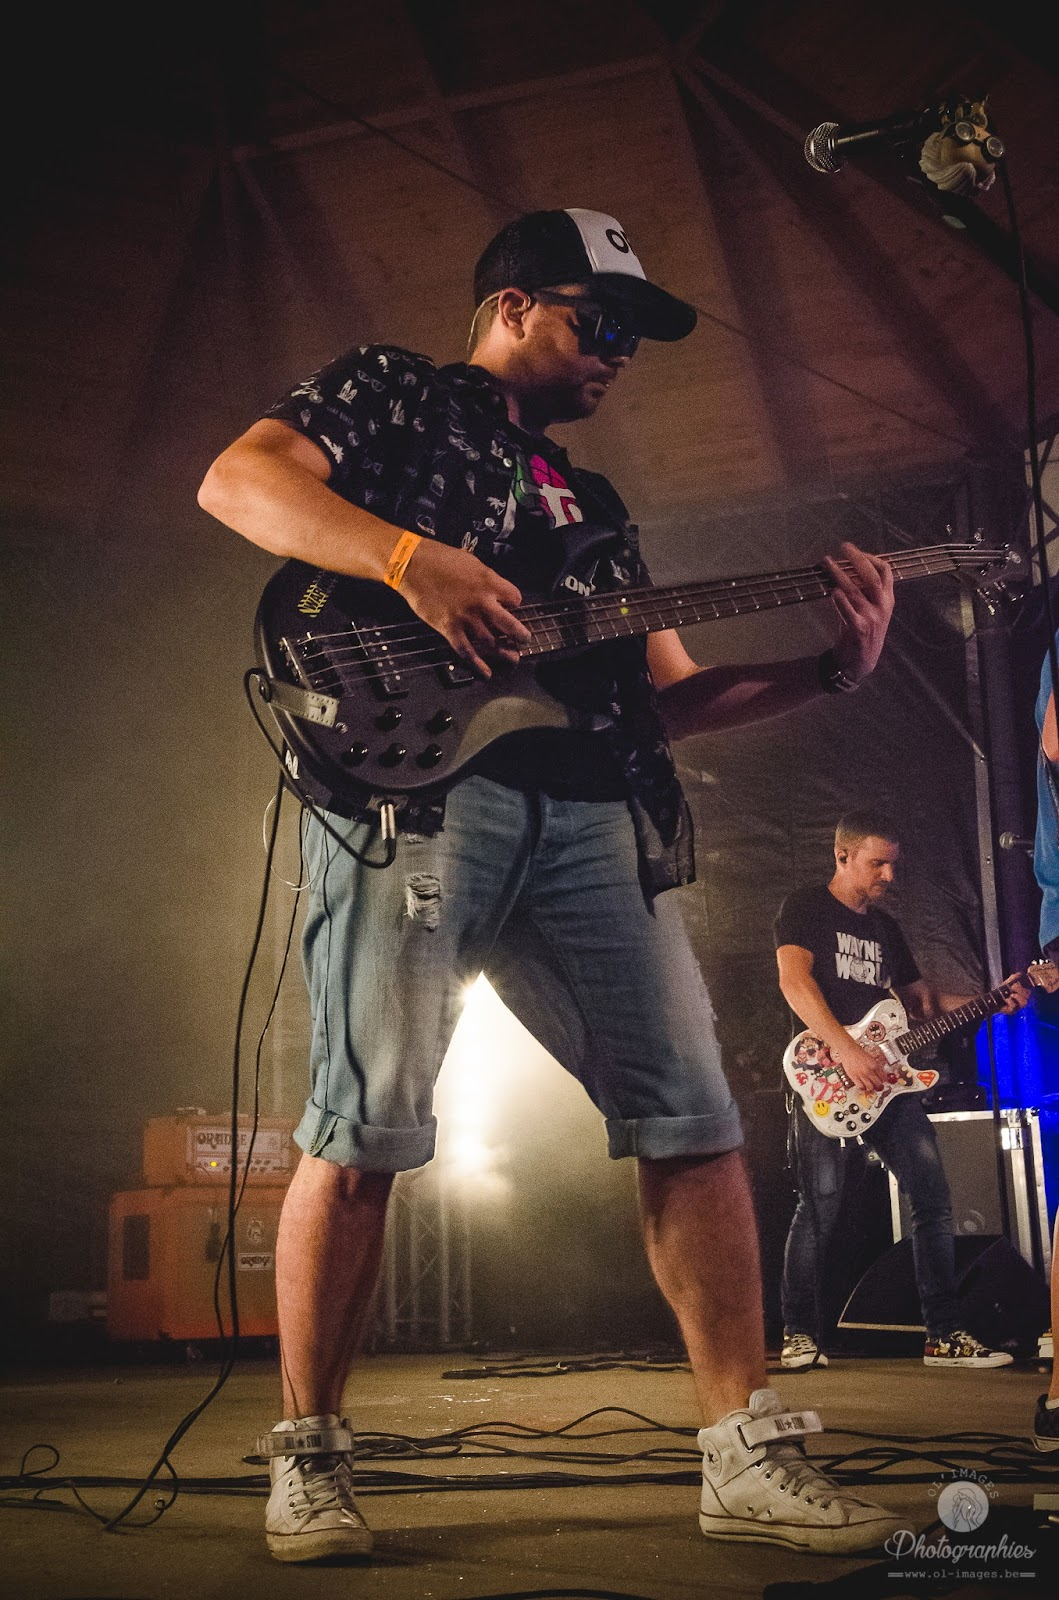 VillePomRock2017_26082017_OL-Images.be--91.jpg